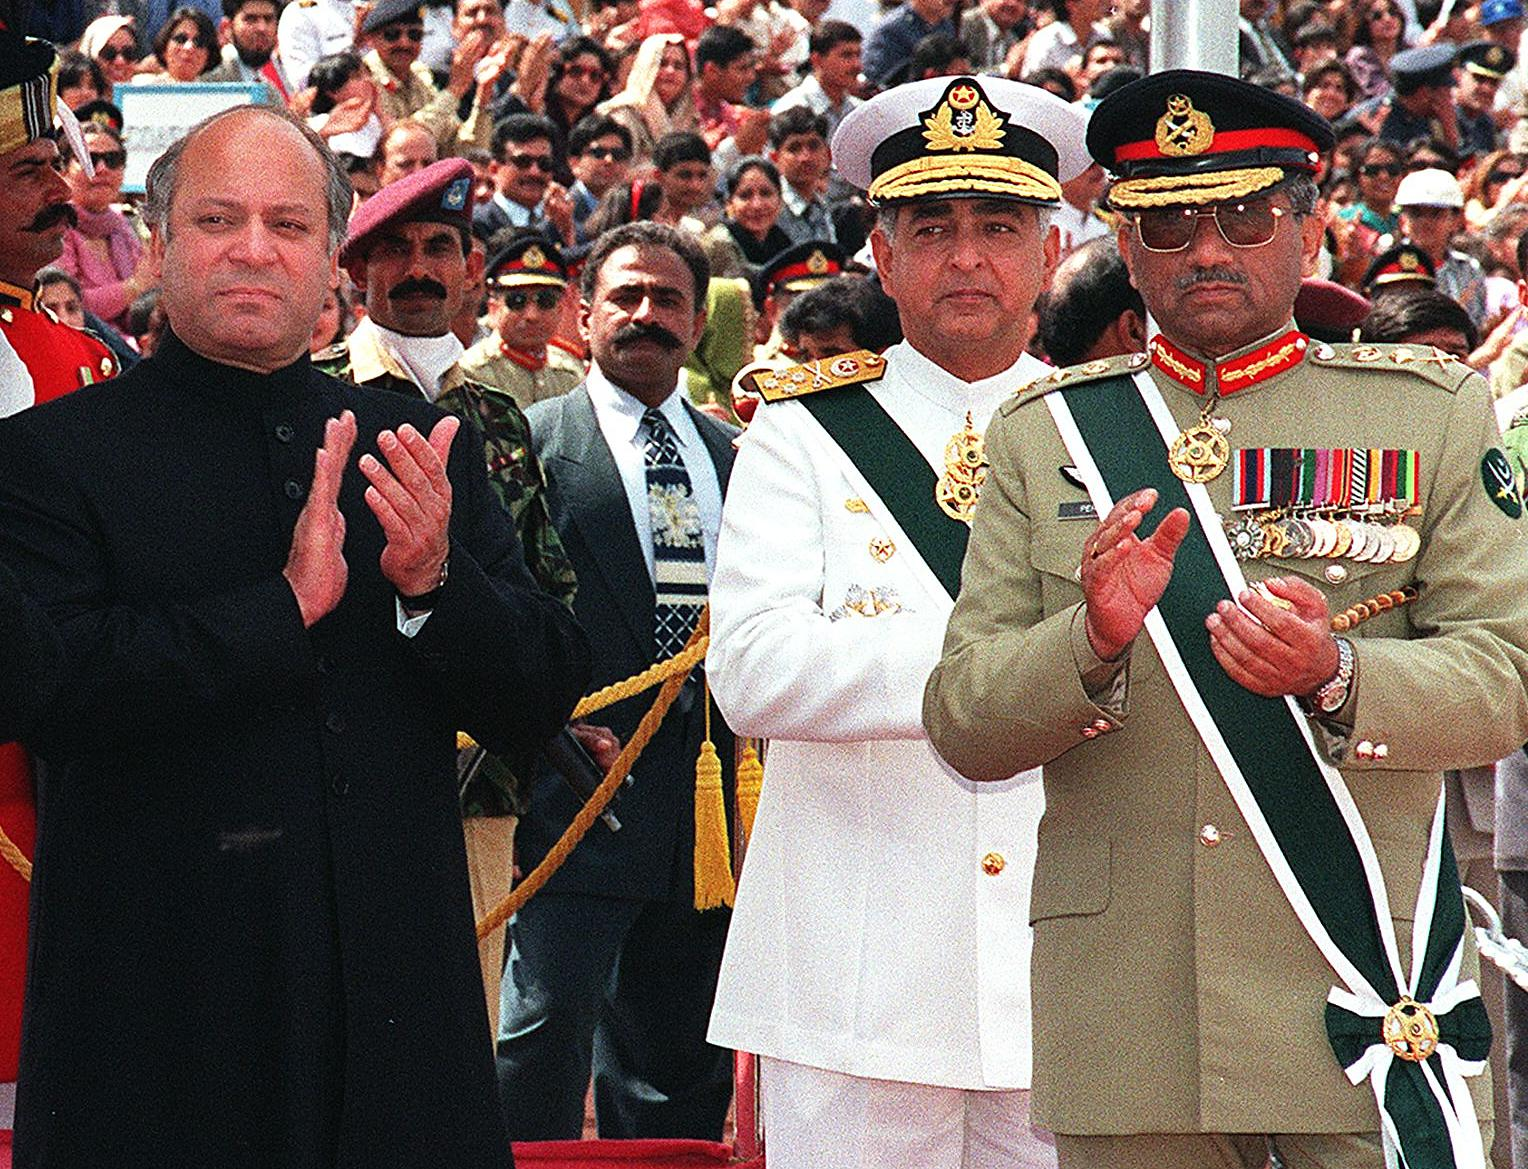 File photo shows Nawaz Sharif (L) with former army chief General Pervez Musharraf (R) applauding the performance of a military parade along with Naval Chief Admiral Fasiah Bokhari (C). Soldiers on 12 October disarmed police around Sharif's house and told him not to leave following the dismissal of General Musharraf earlier. — AFP